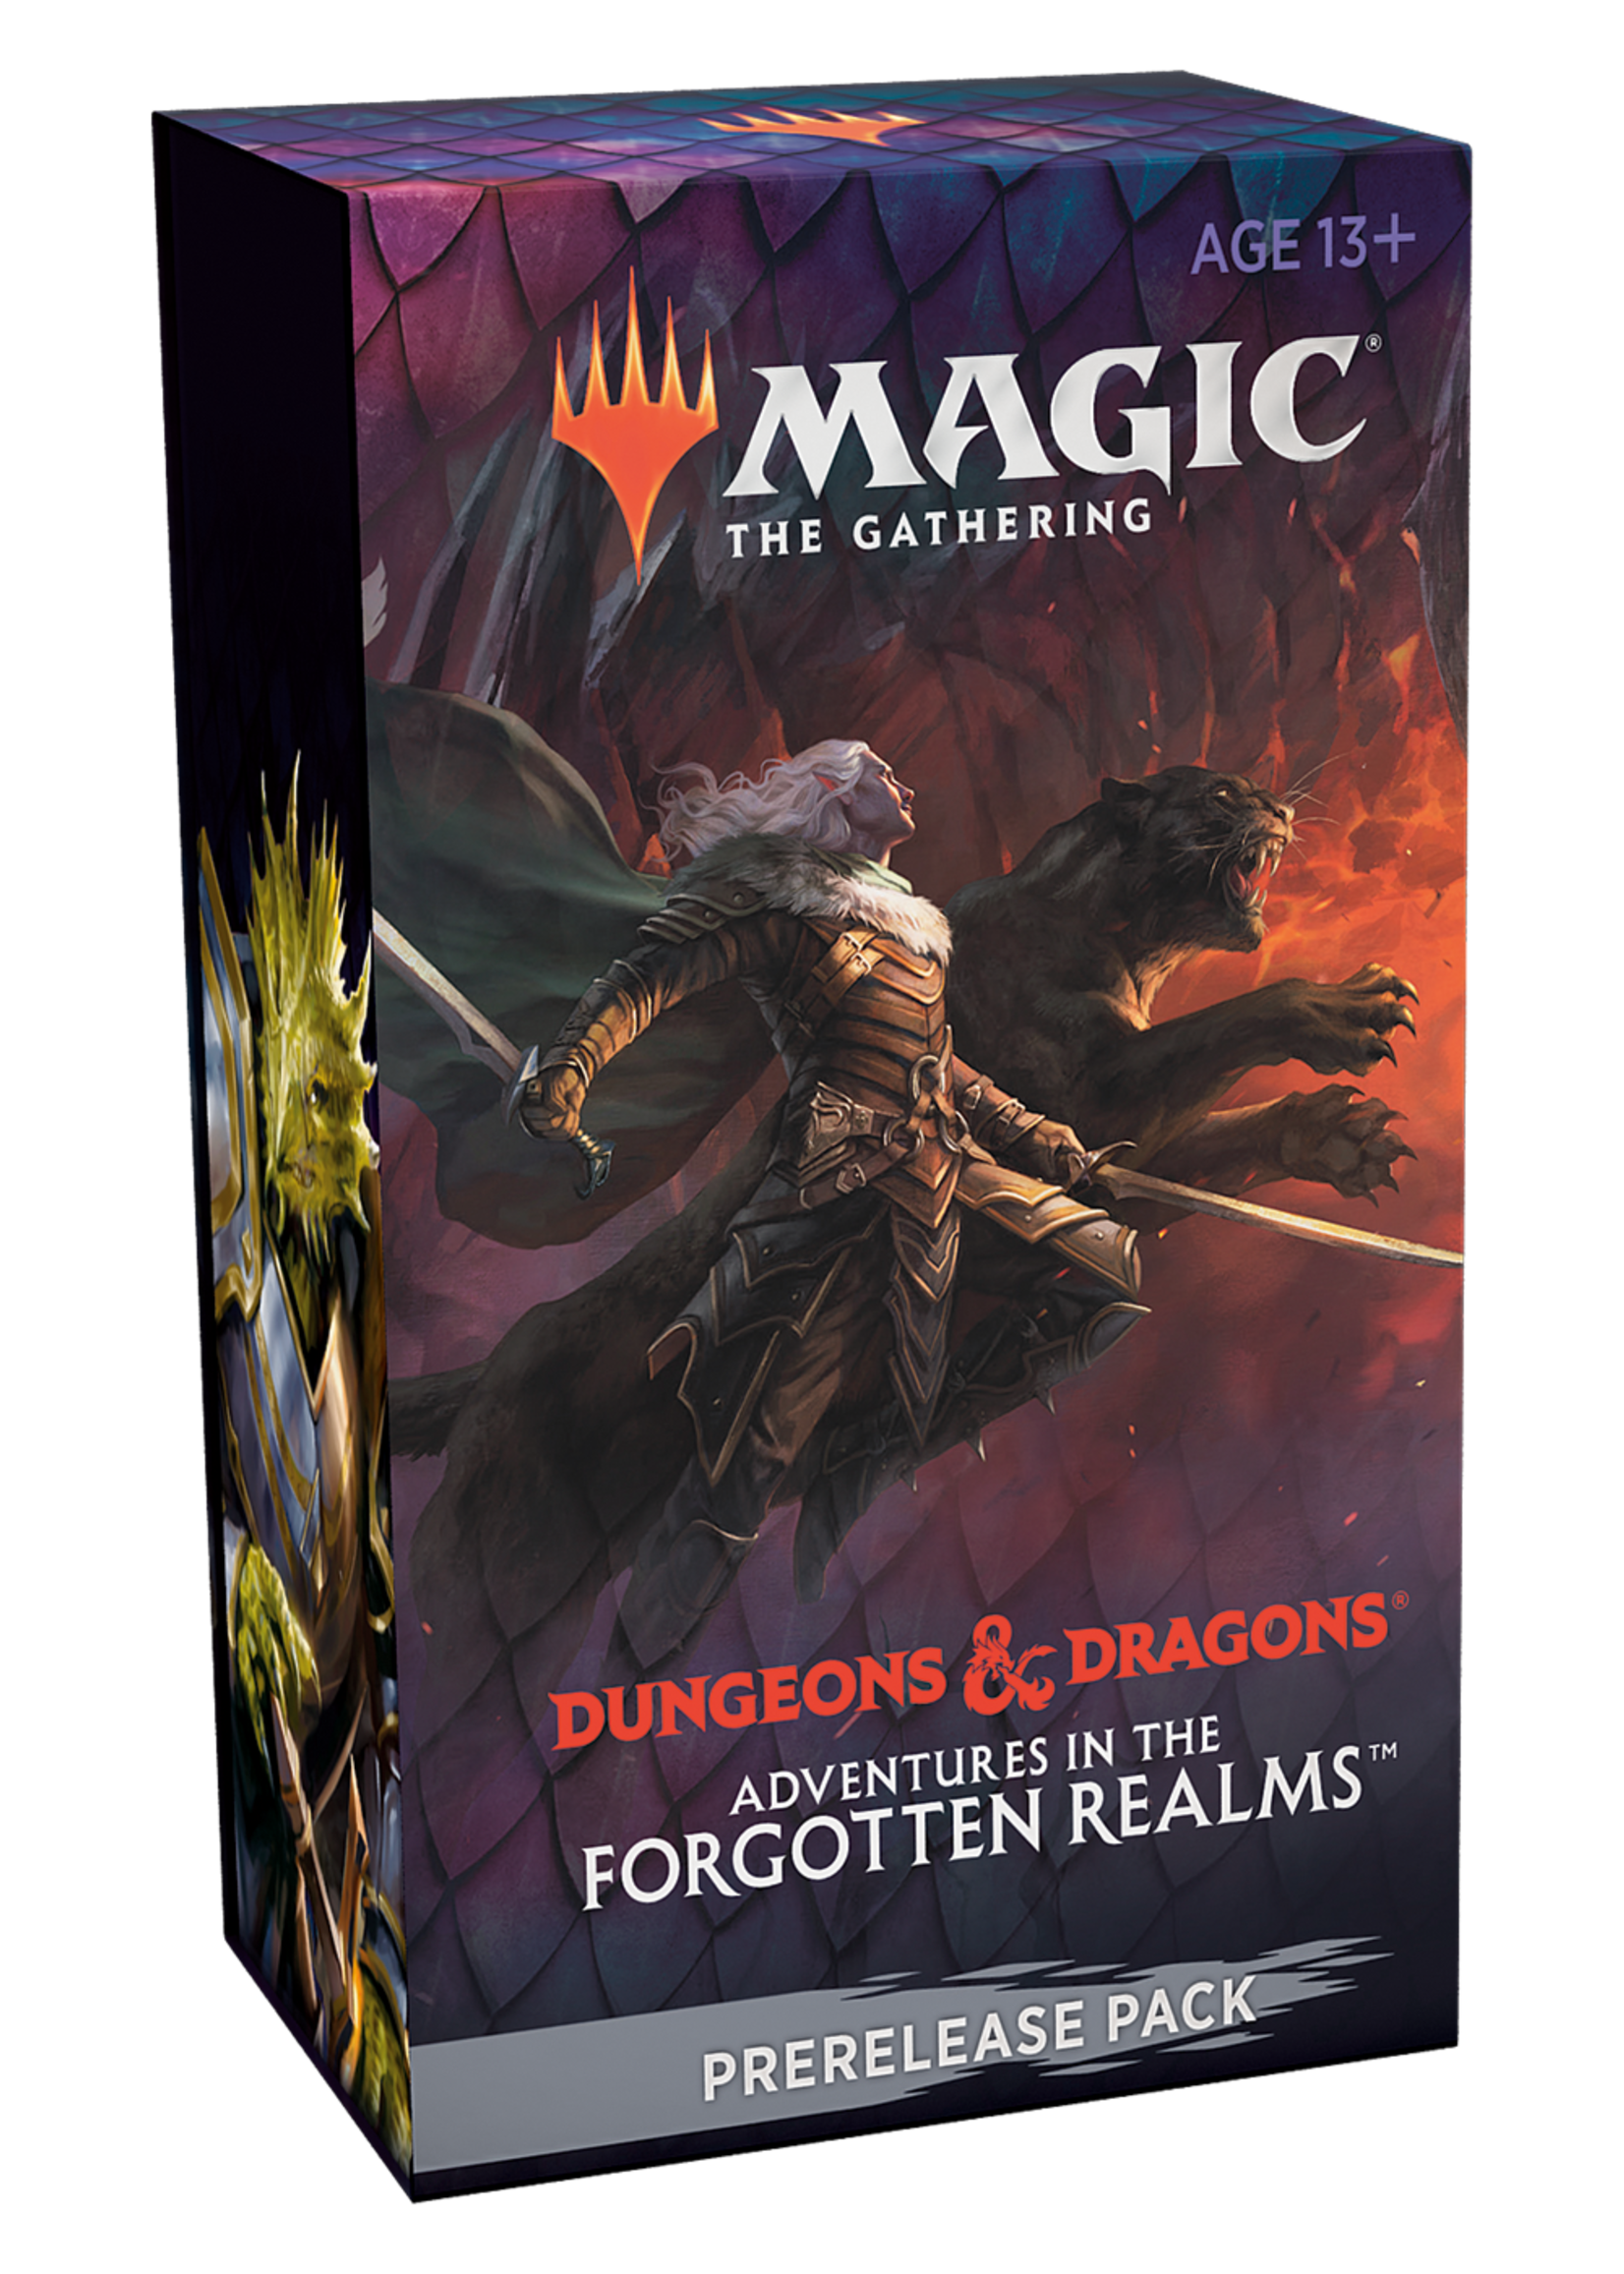 Magic: The Gathering Adventures in the Forgotten Realms prerelease kit